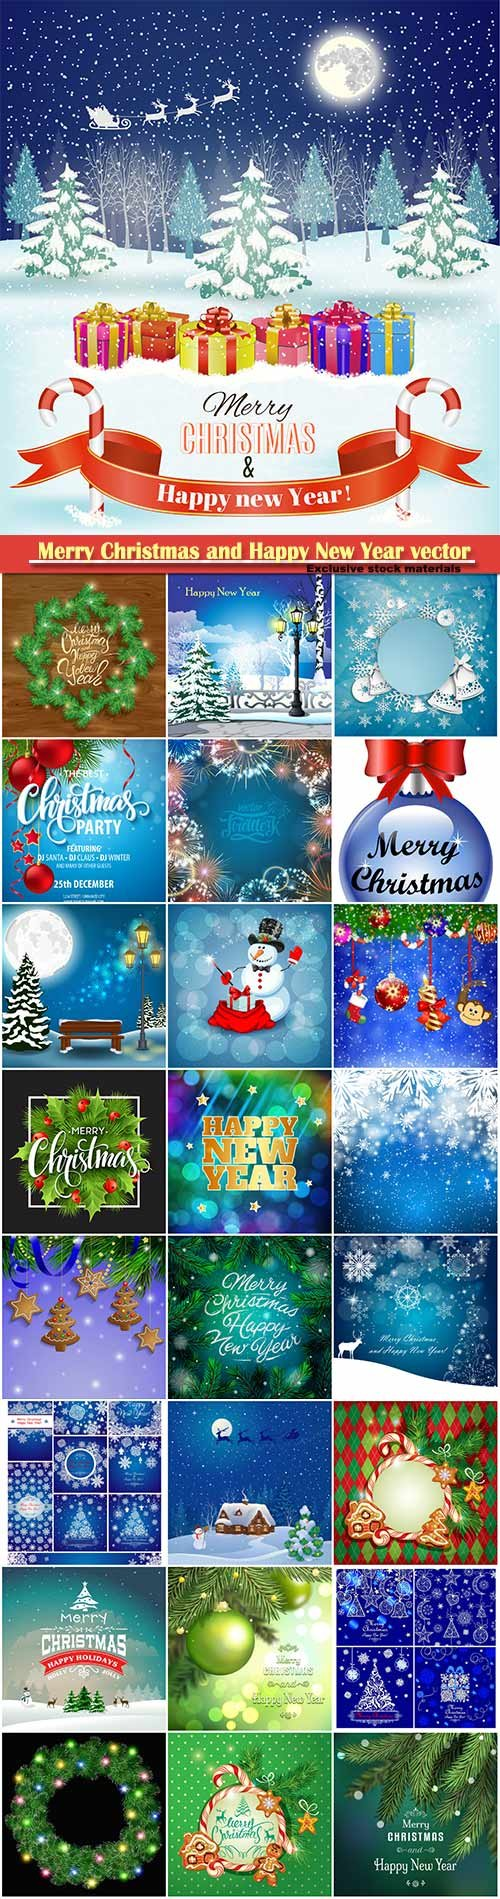 Merry Christmas and Happy New Year vector design # 25